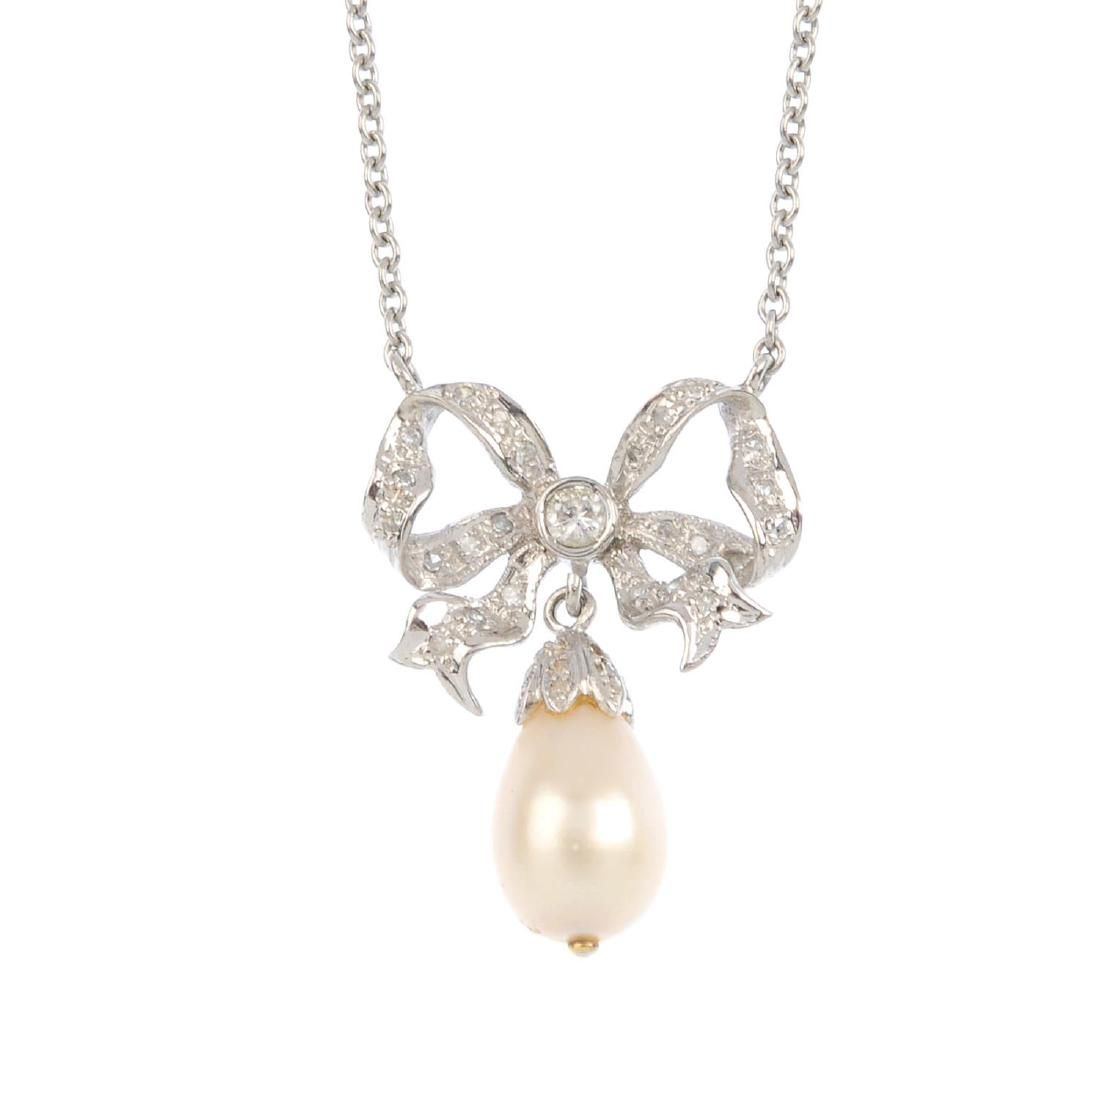 A natural pearl and diamond pendant. The natural